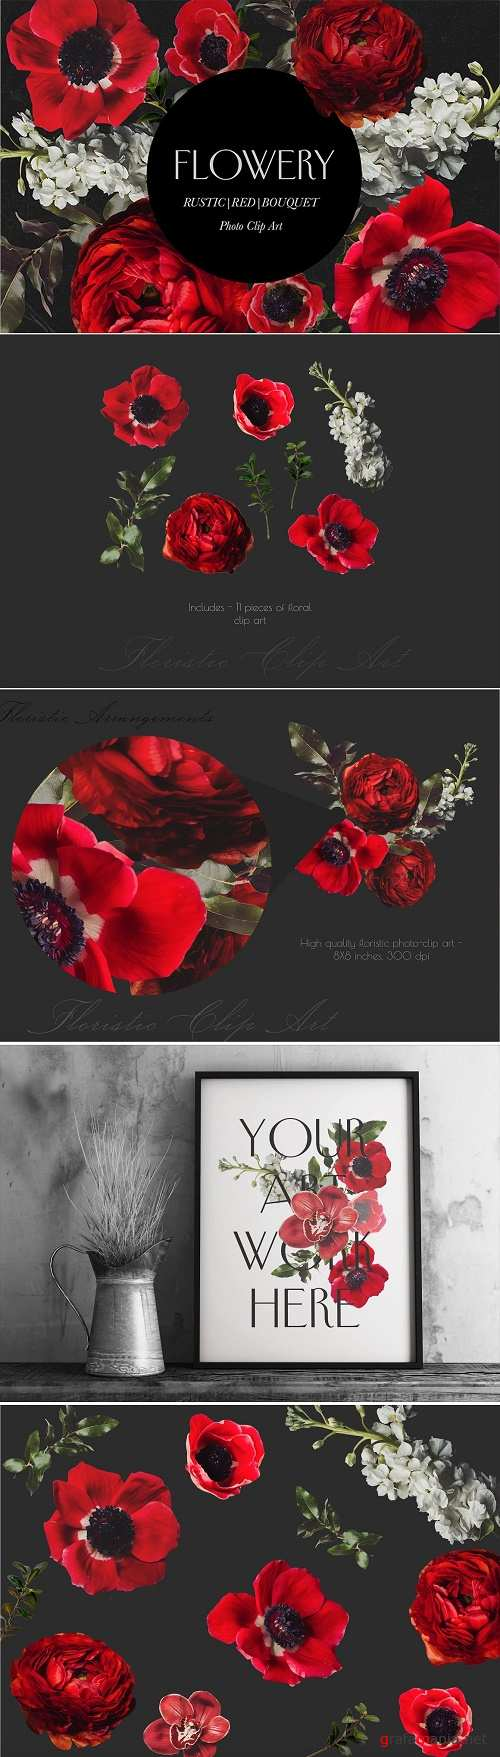 Red Rustic Bouquet - 2533739